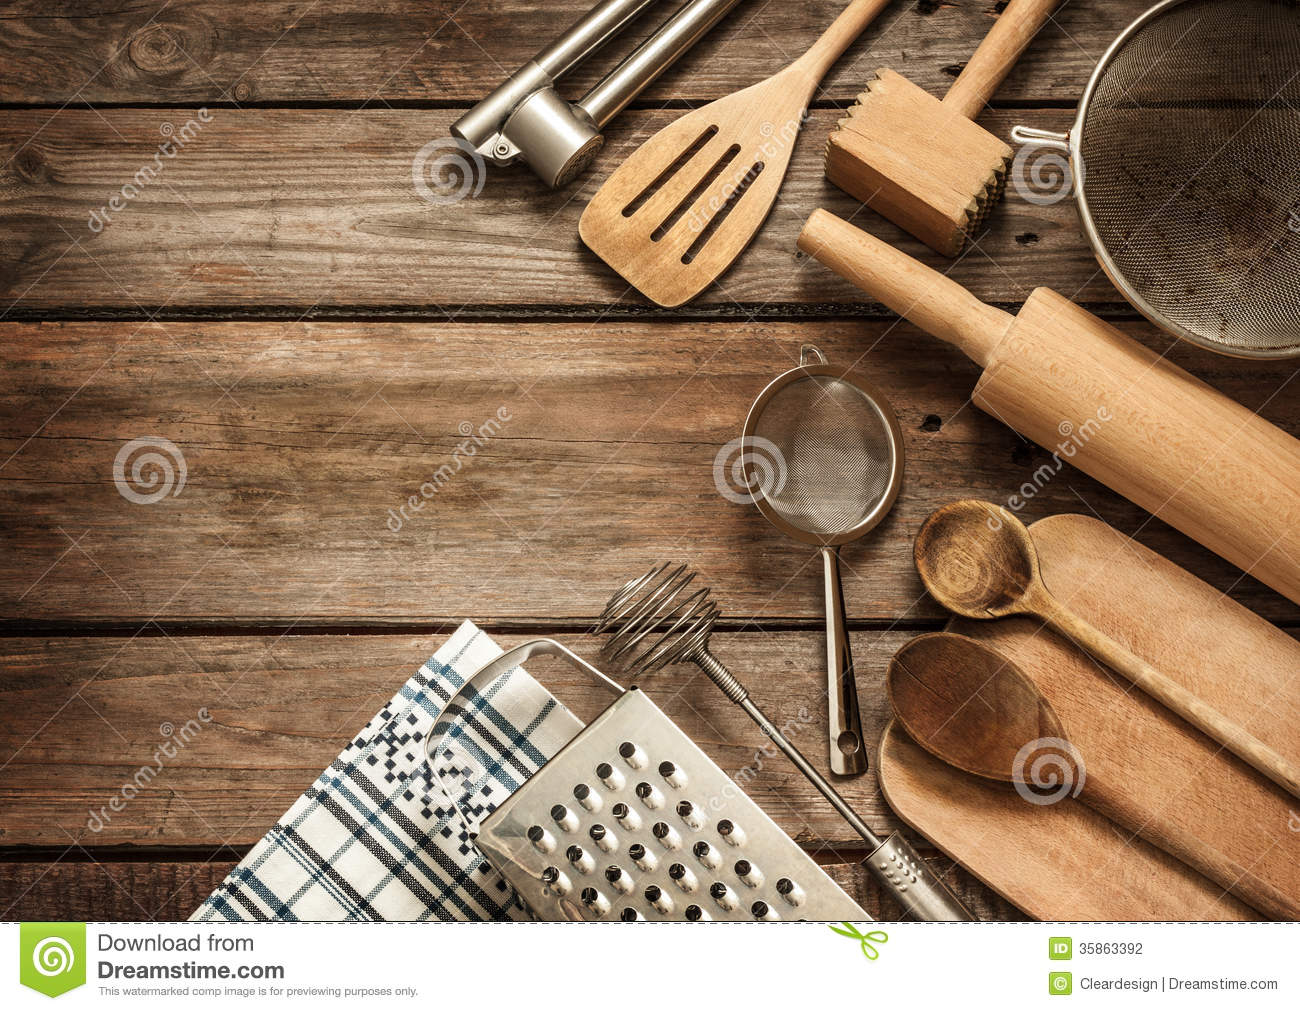 Rural kitchen utensils on vintage planked wood table stock for Table utensils